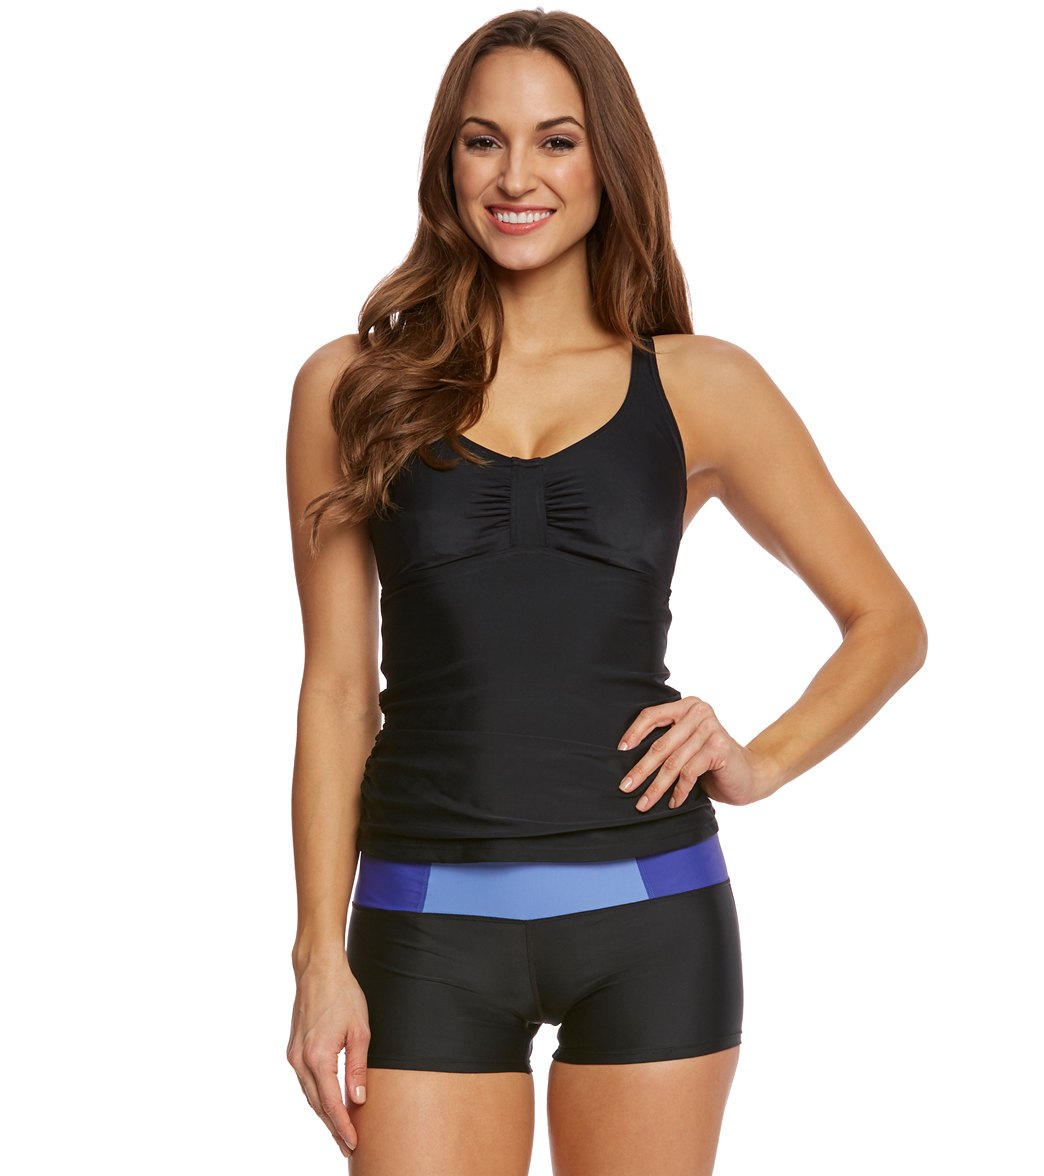 75d6ed78434f0 Prana Women s Aelyn Tankini Top (D-Cup) at SwimOutlet.com - Free ...